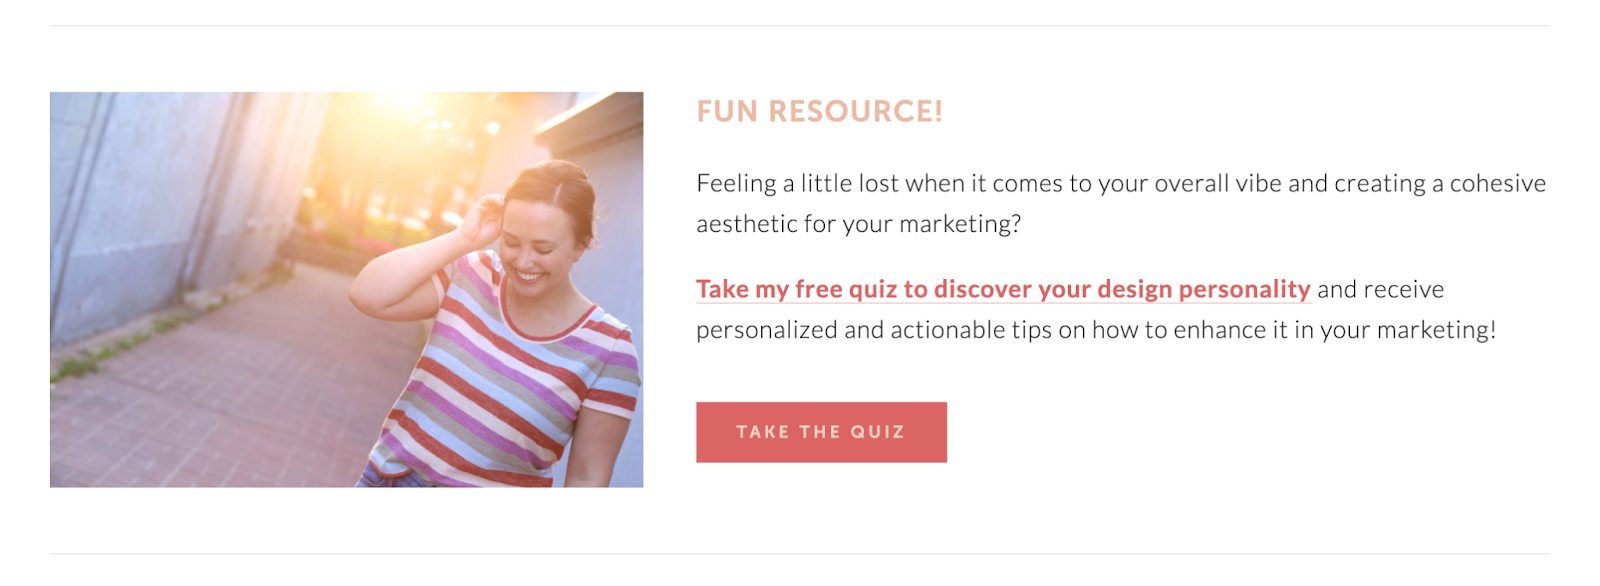 CTA Take the quiz in blog posts